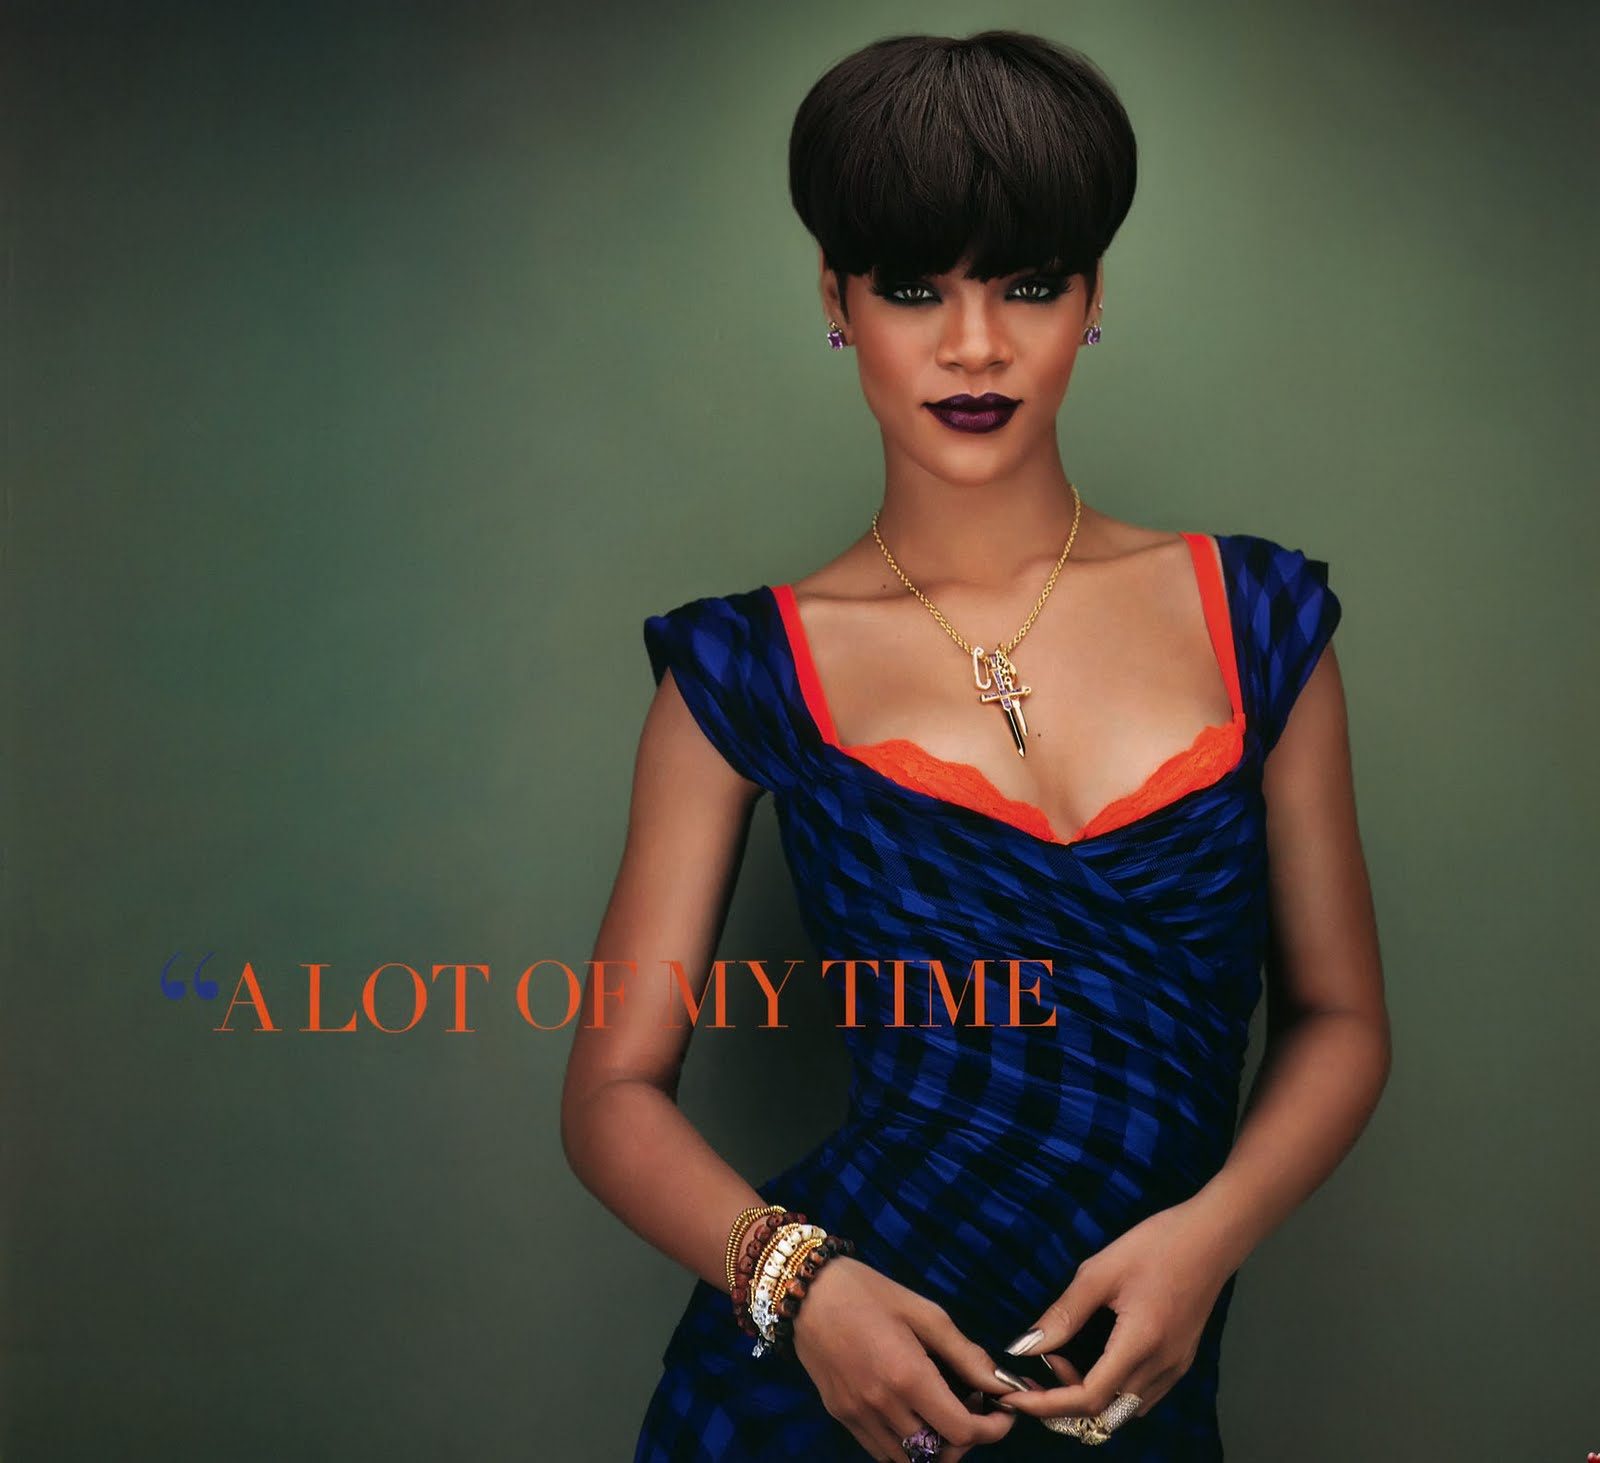 rihannas whats my name rockets to no 1 on hot 100